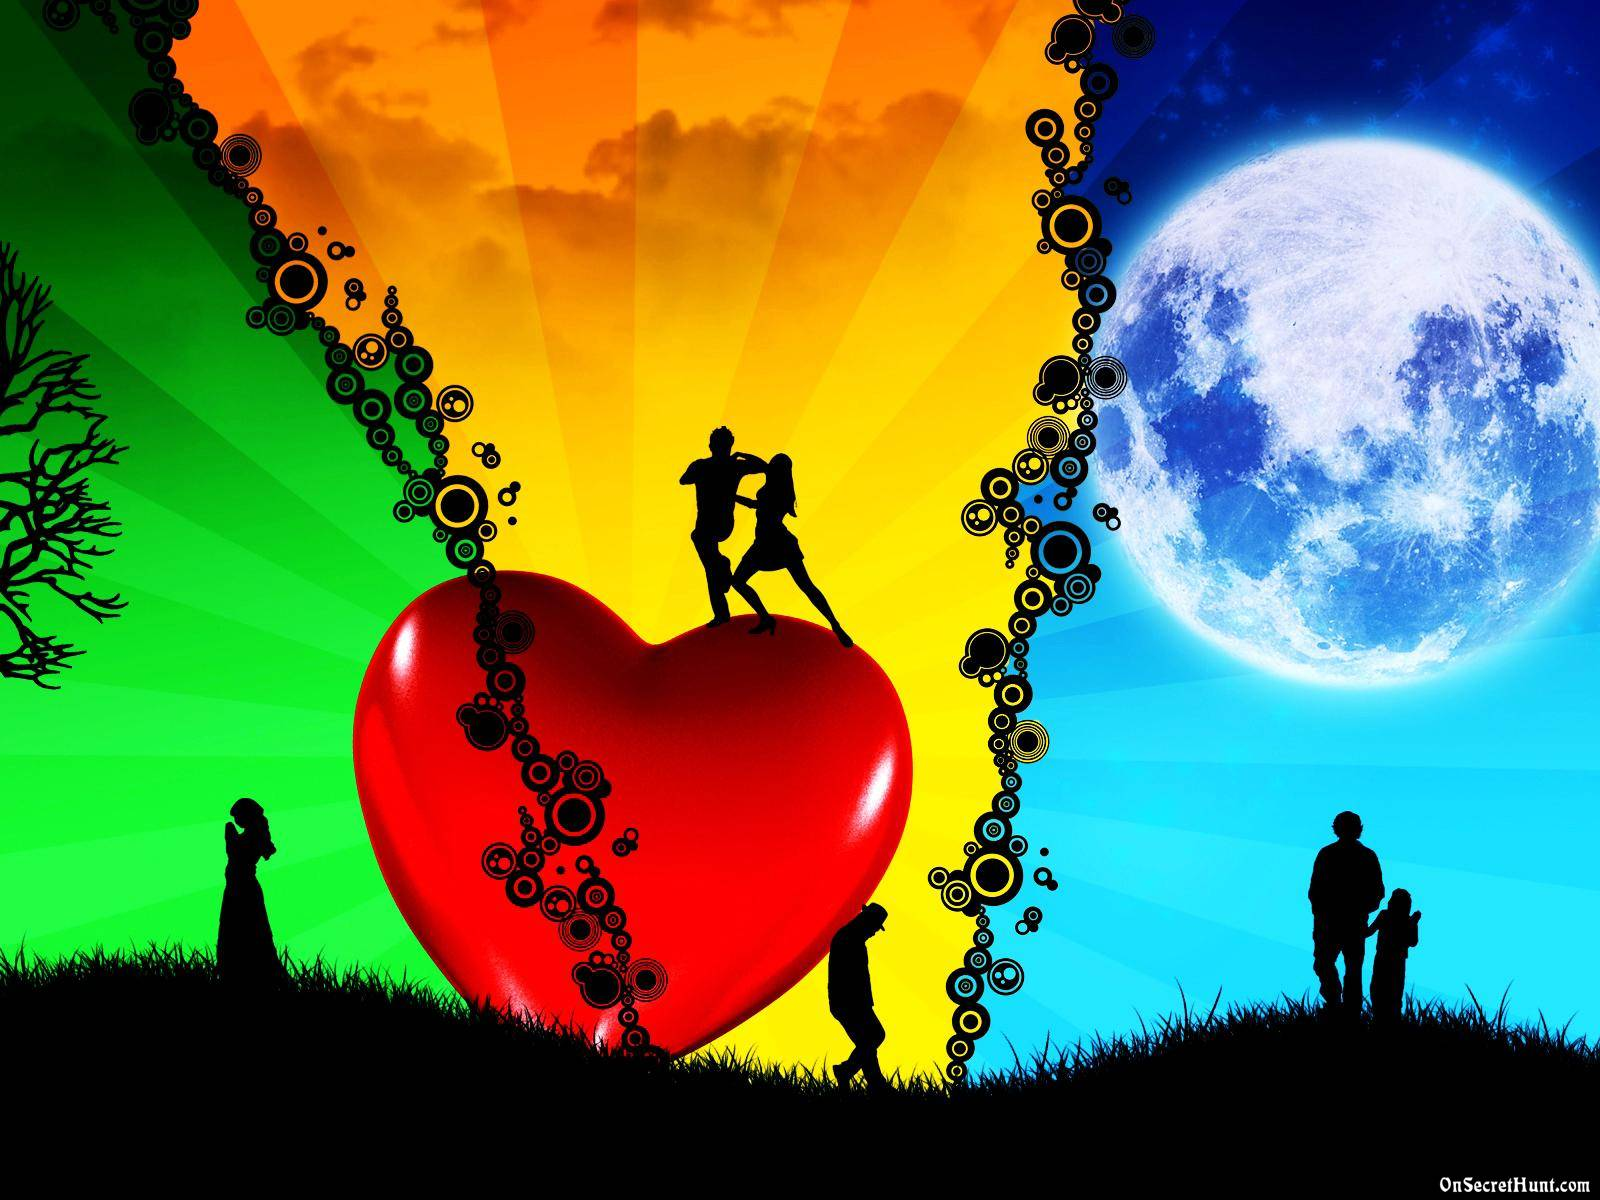 New Full Hd Love Wallpaper : Love Wallpapers 3D - Wallpaper cave